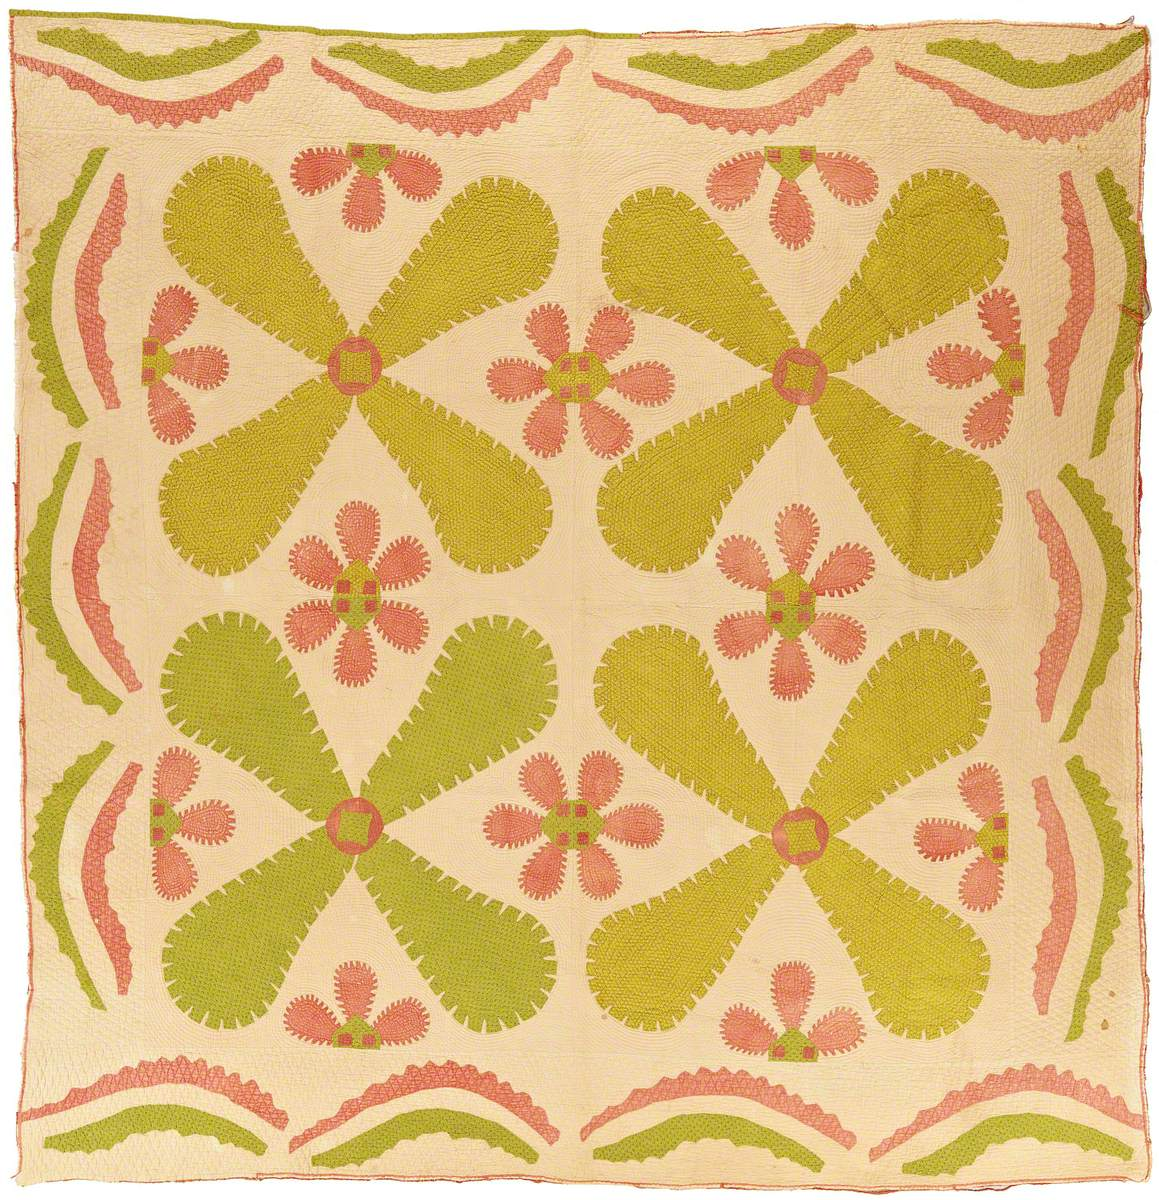 Princess Feather (Propellers) Quilt